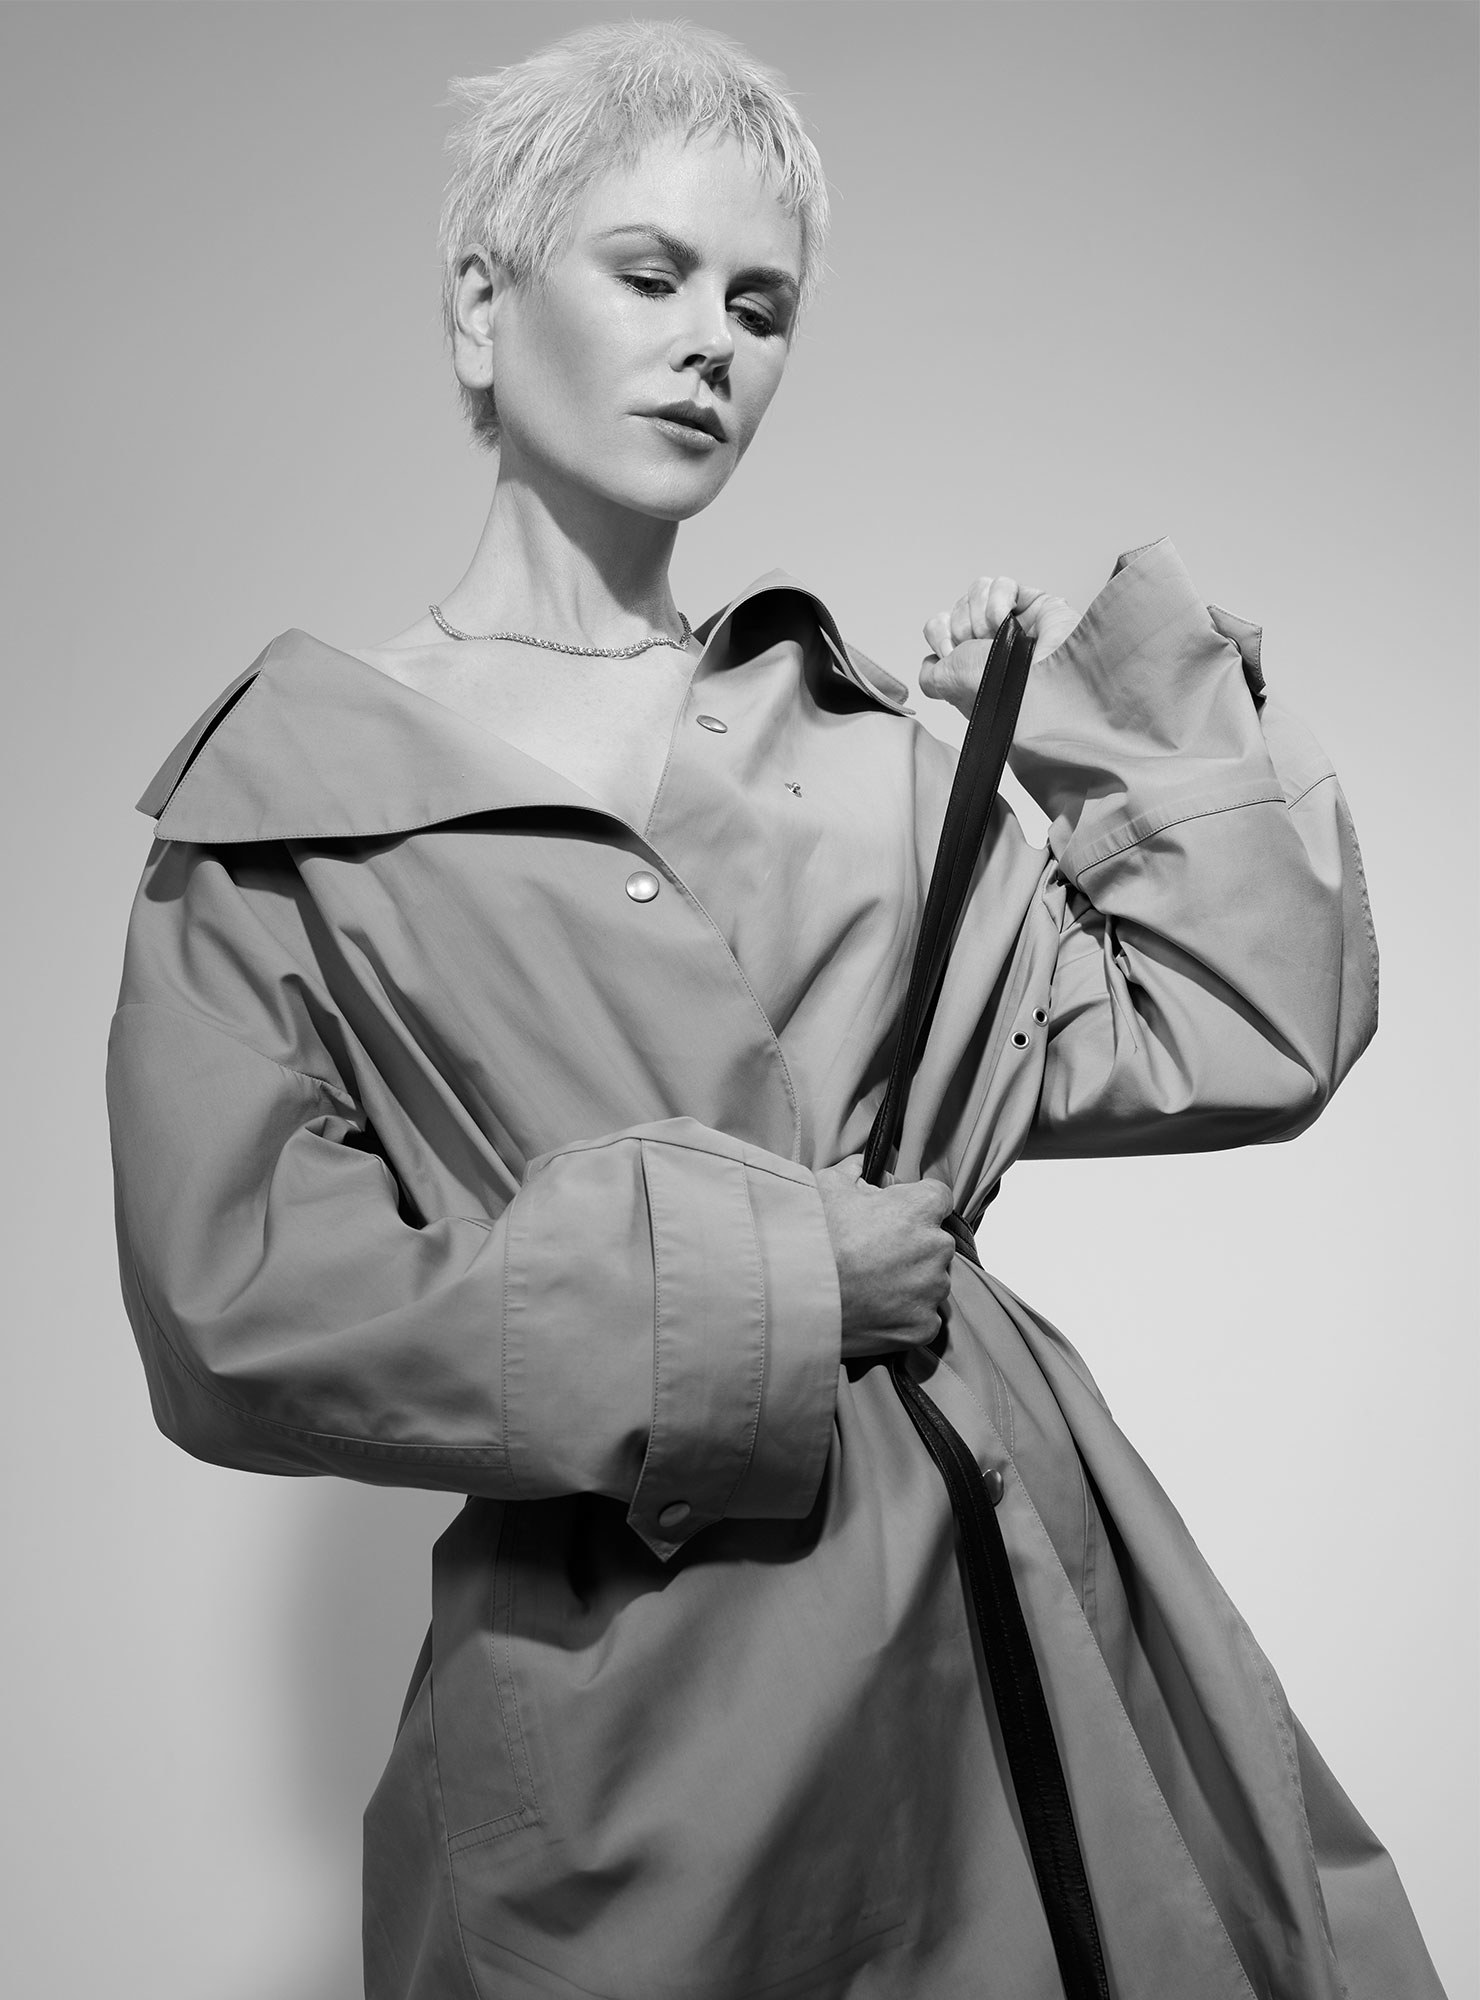 Nicole Kidman by Collier Schorr. Coat by Dior; necklace by Tiffany & Co.